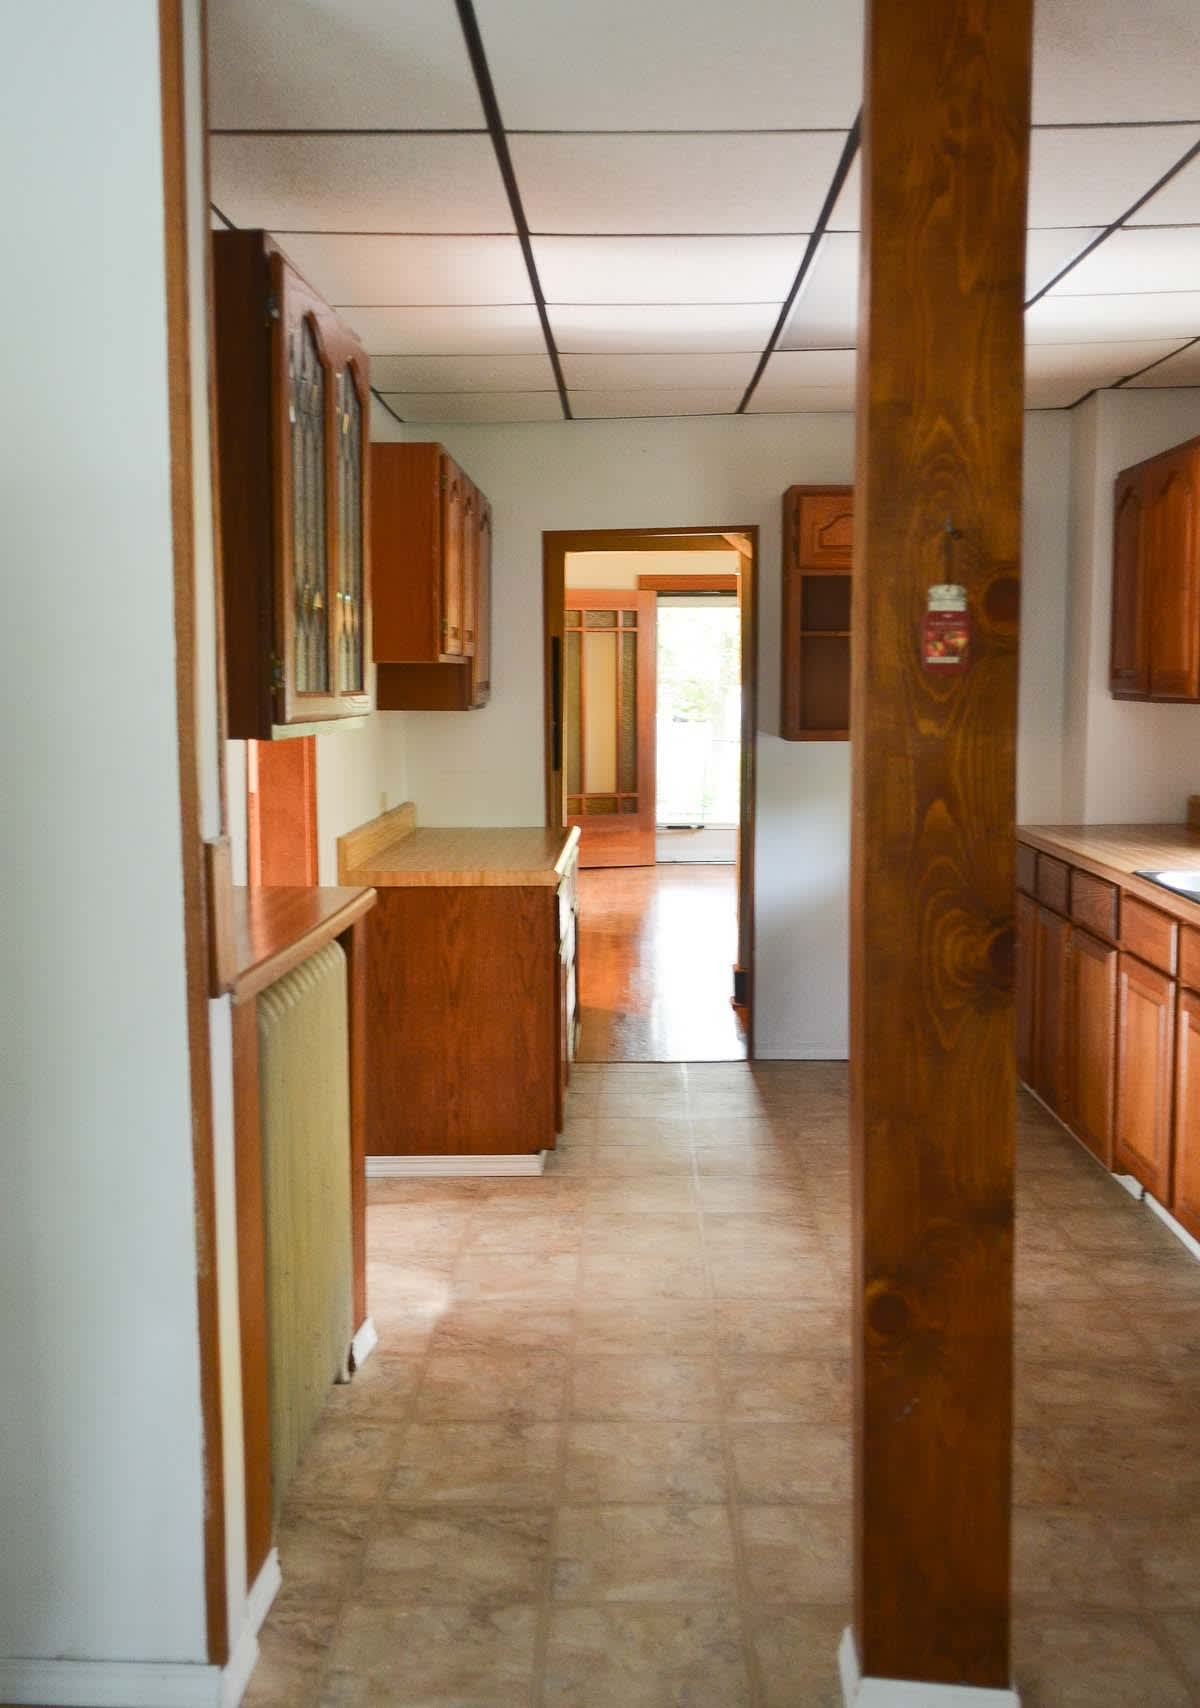 Faith's Kitchen Renovation: How We Assembled & Installed Our IKEA Kitchen: gallery image 13